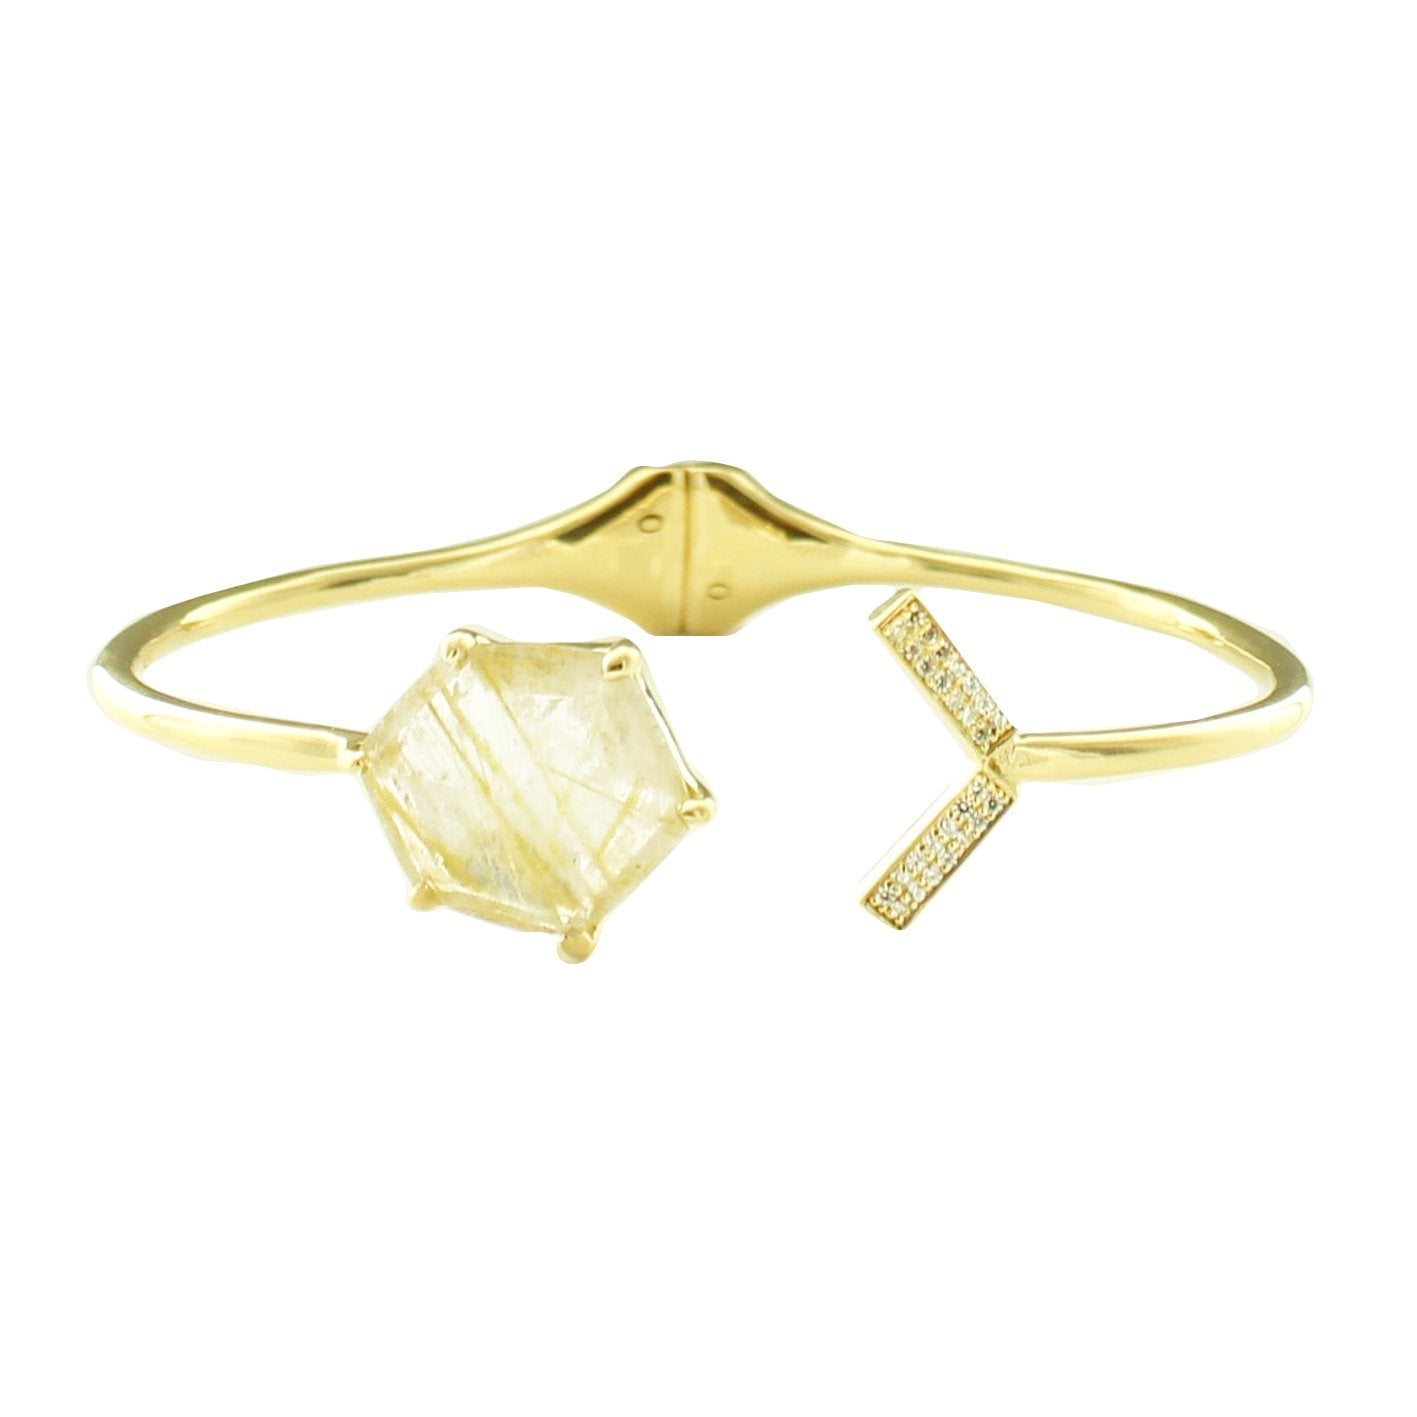 HONOUR SHIELD LOVE CUFF - GOLDEN RUTILE & GOLD - SO PRETTY CARA COTTER